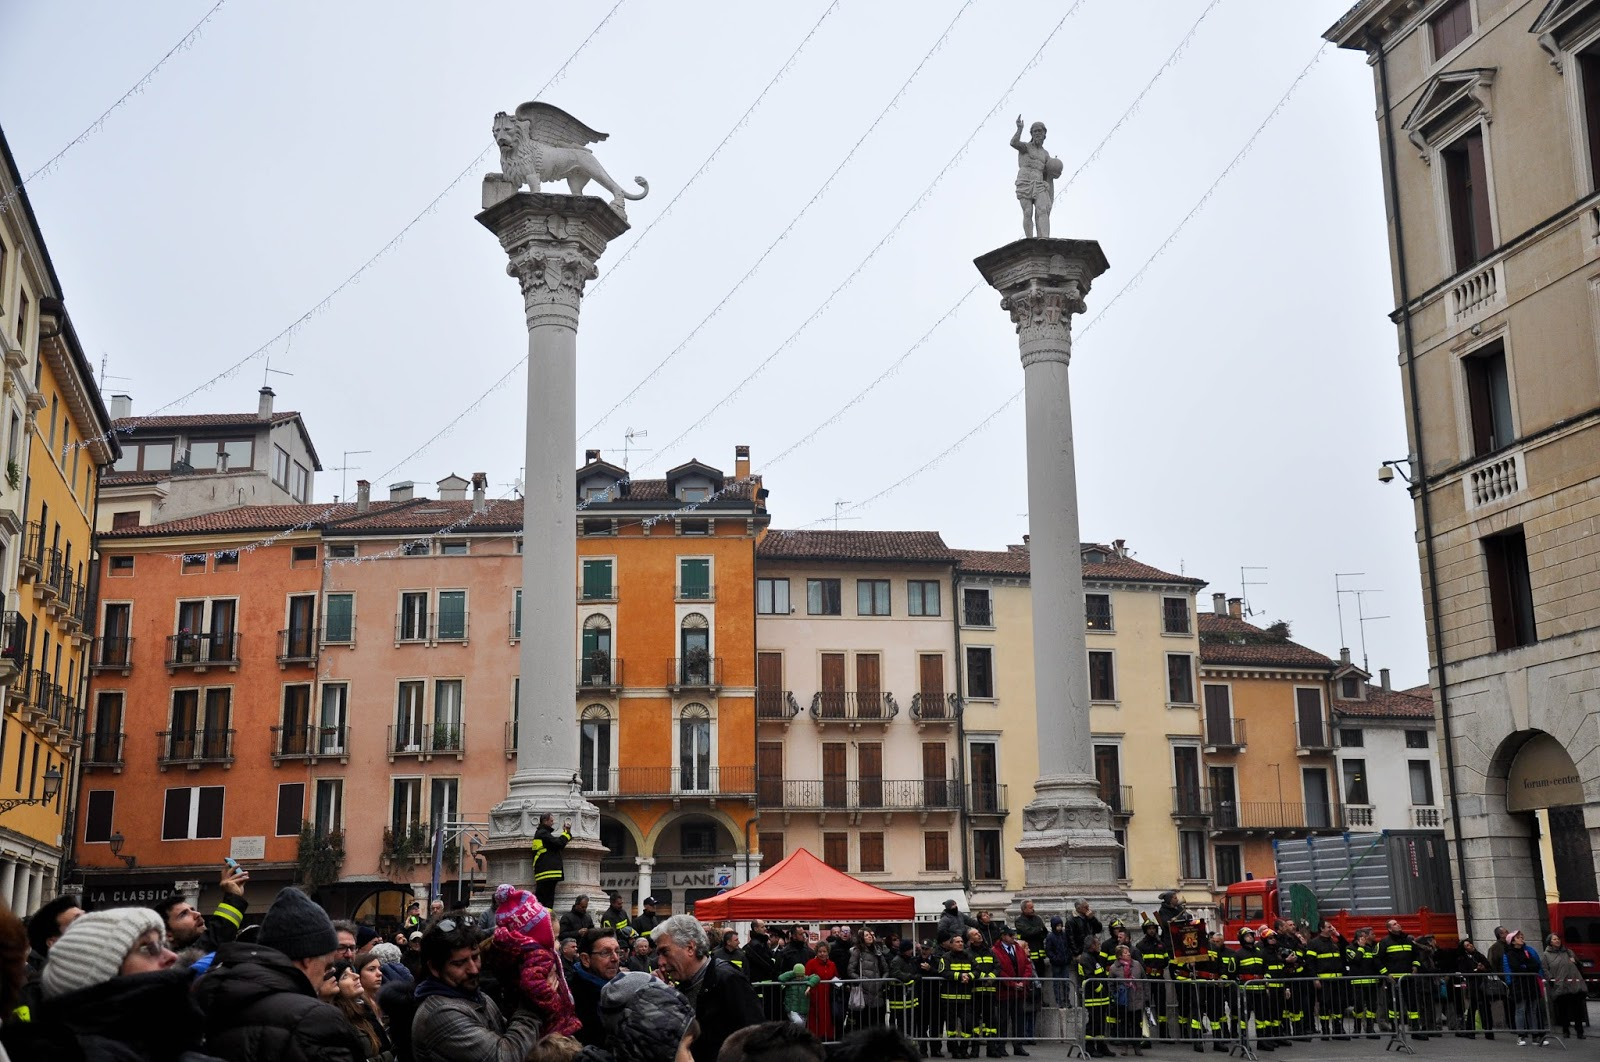 The crowd watching the demonstration of the firefigters on Piazza dei Signori, Saint Barbara celebration, Vicenza, Veneto, Italy